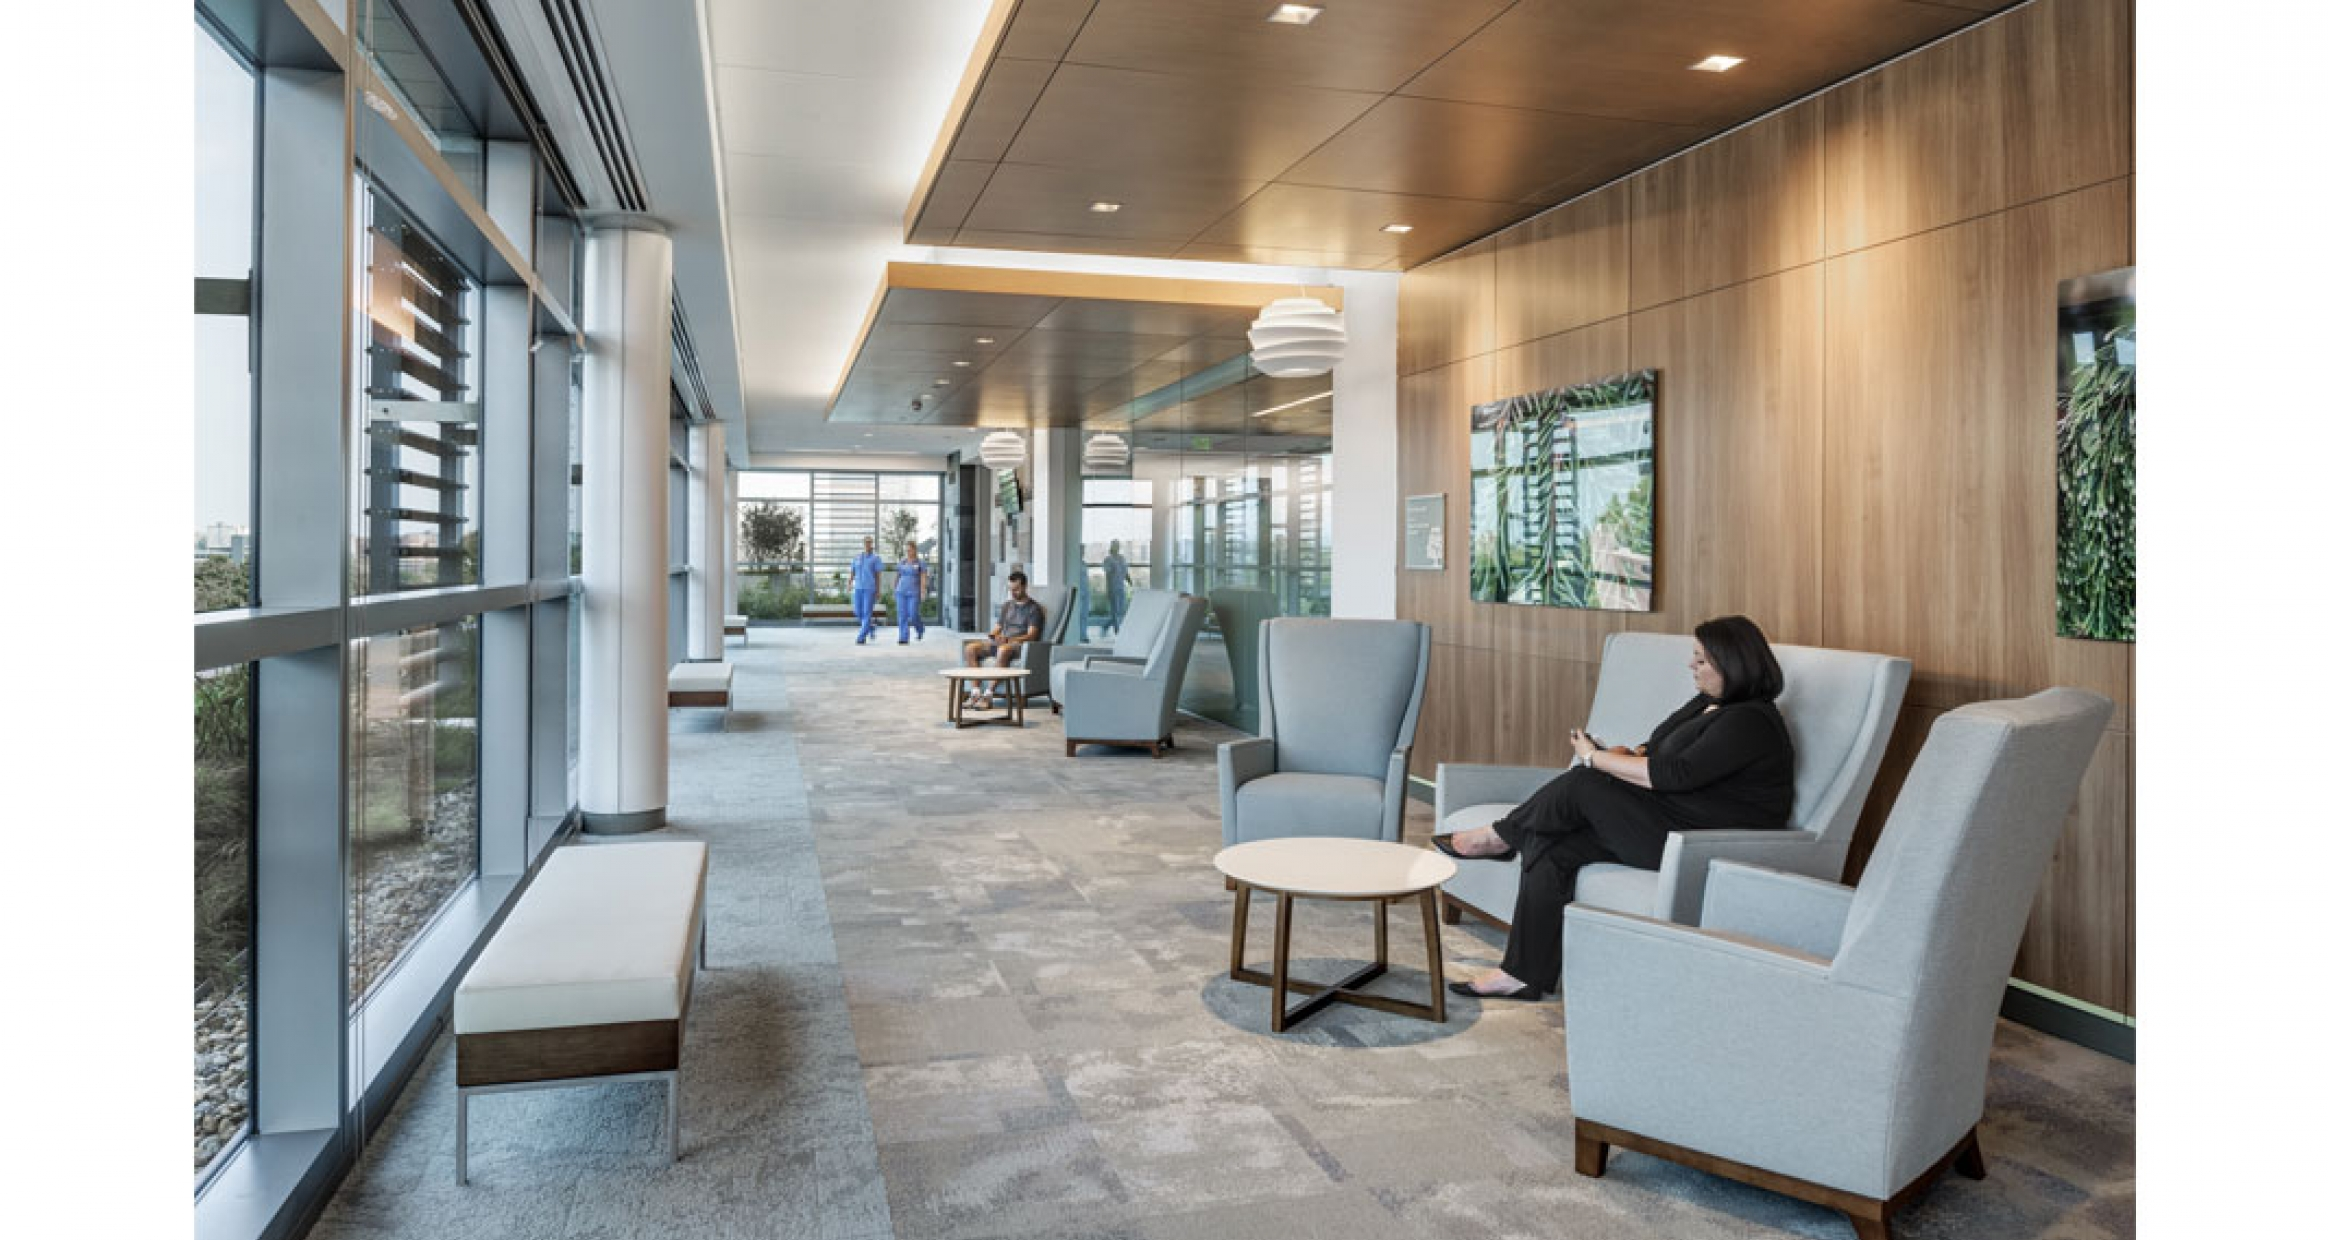 Use of natural light and warm colors gives families in the waiting area a place to relax while viewing the green roof.